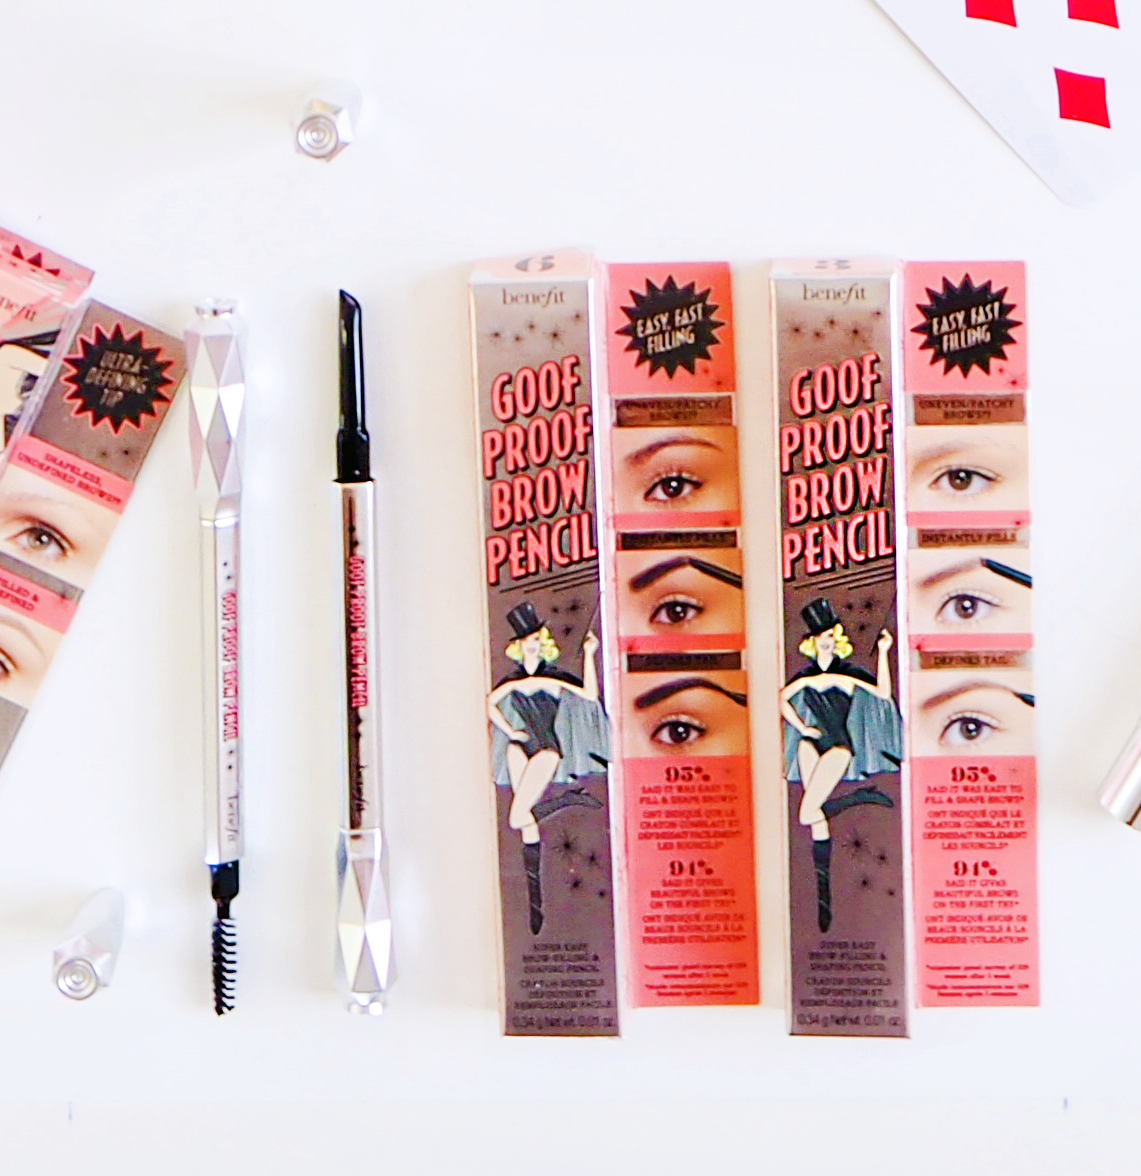 INTRODUCING… The NEW Benefit Brow Collection | Benefit Cosmetics